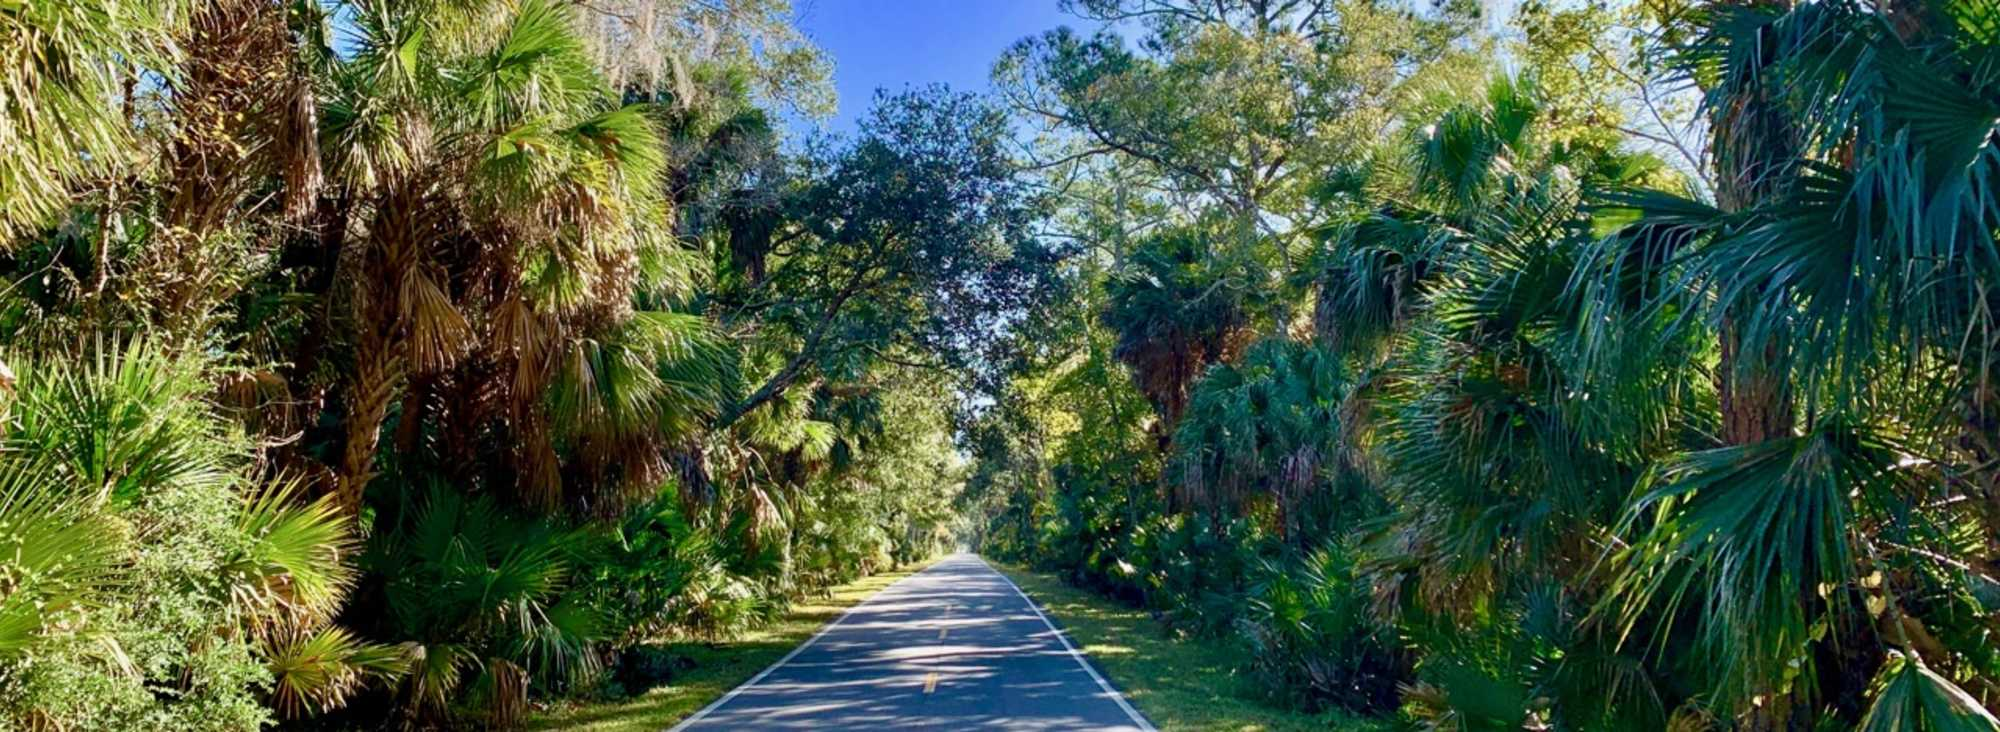 The Ormond Scenic Loop & Trail is a must-do scenic drive